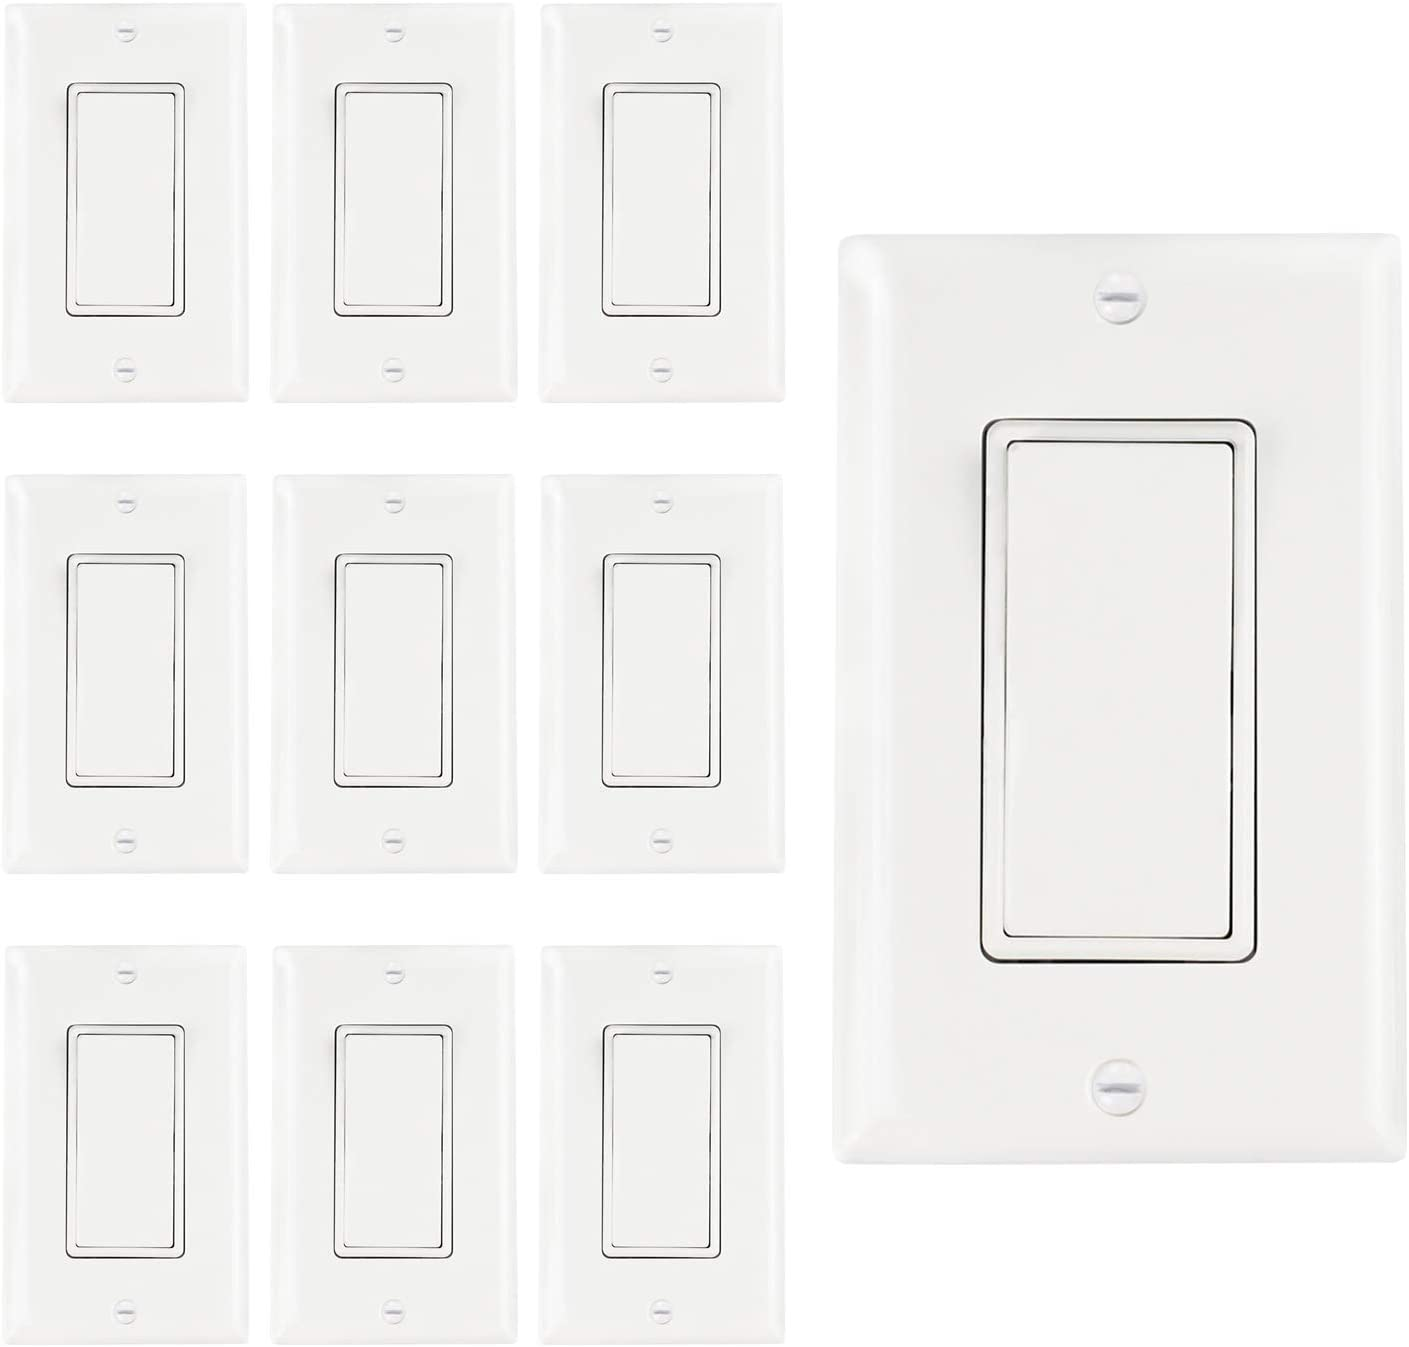 AbboTech Light Switch Mail order cheap Dealing full price reduction With Wall Decorative Plates Included OF ON